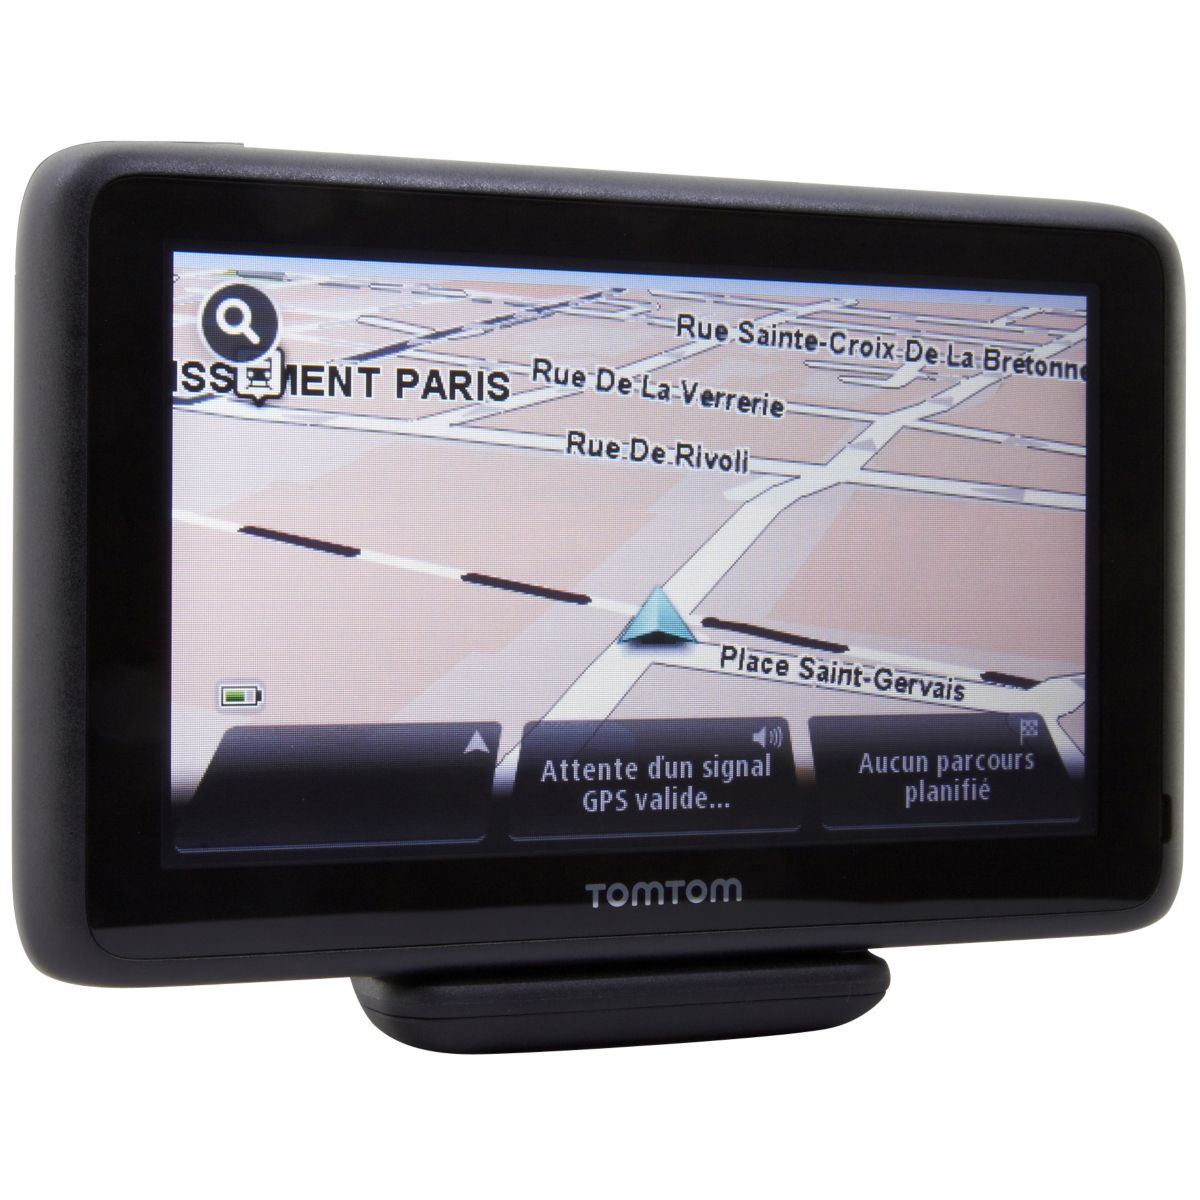 tomtom pro 7150 truck gps poids lourds comparer avec. Black Bedroom Furniture Sets. Home Design Ideas